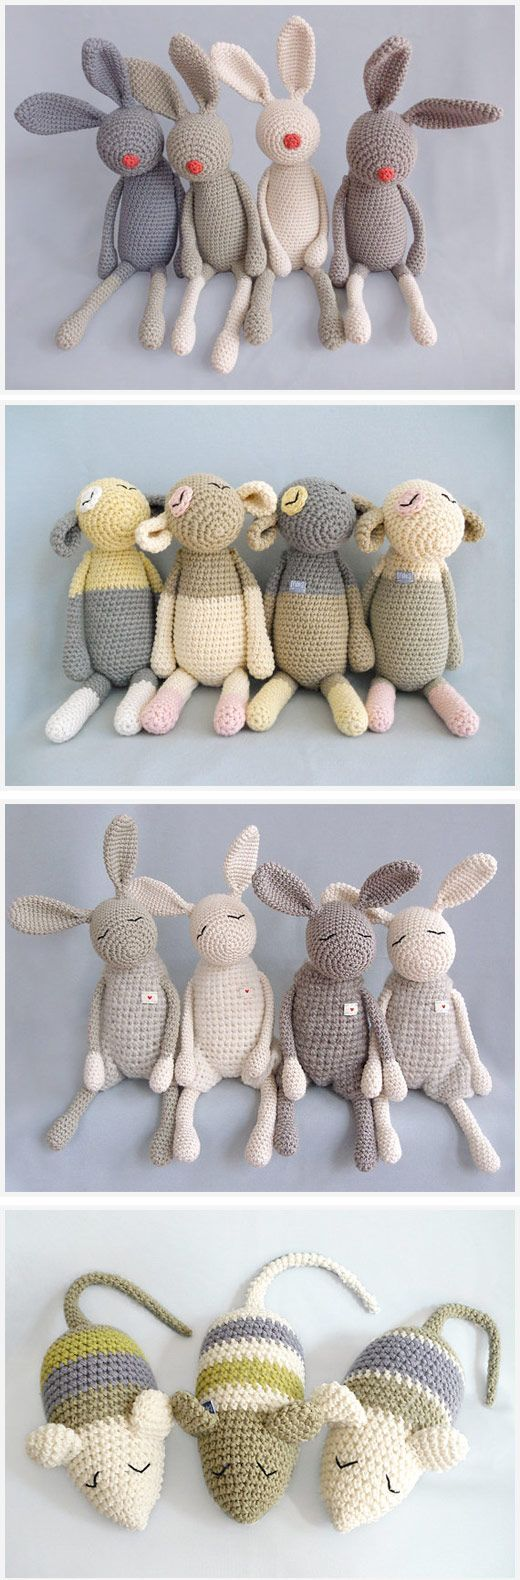 Okay, so no pattern – just cute cute cuteness!  Update:  still cute cute cuteness, but now with a pattern (thanks to Mary via Disqus) via Etsy here. Cute Crocheted Creations by Eineldee via Kidindependent